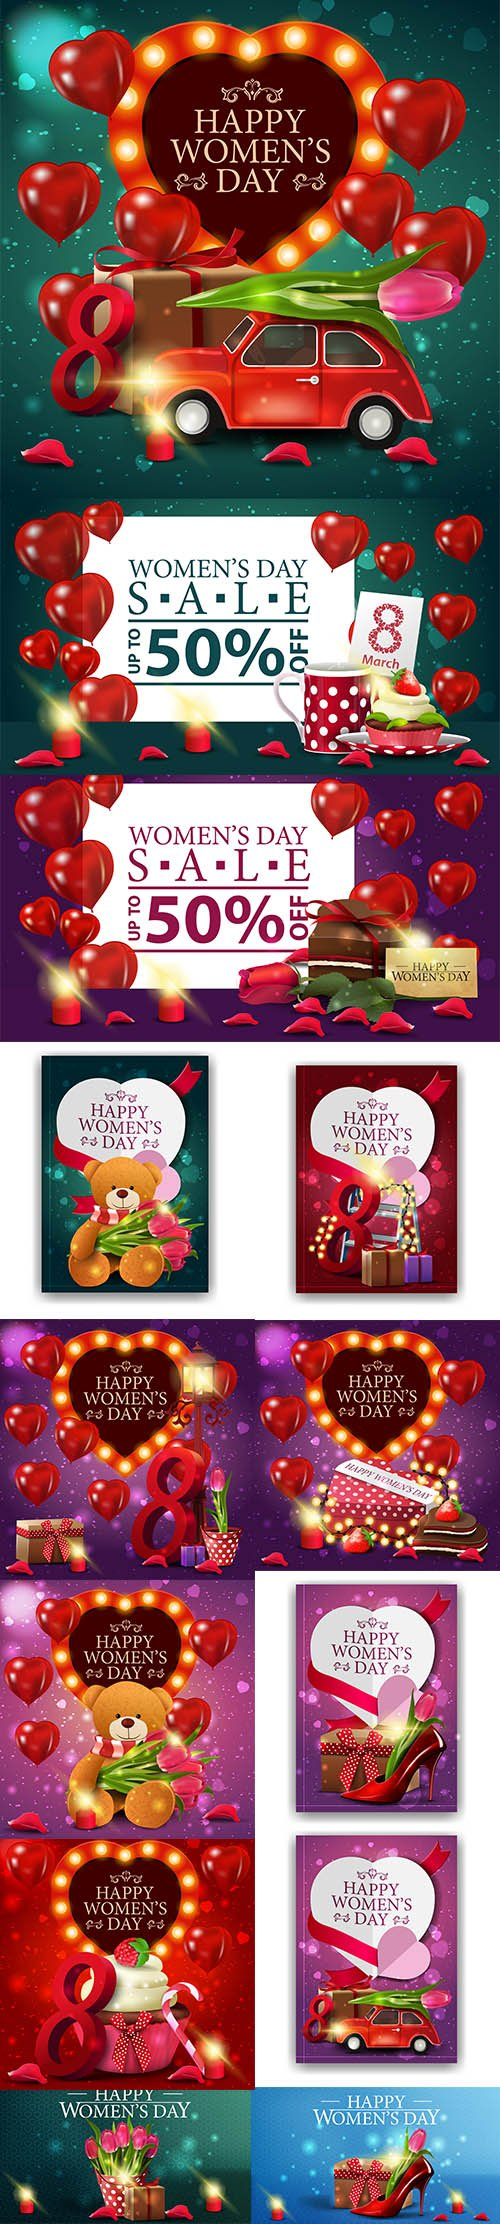 Set of Womens Day Sale Illustrations Vol 2